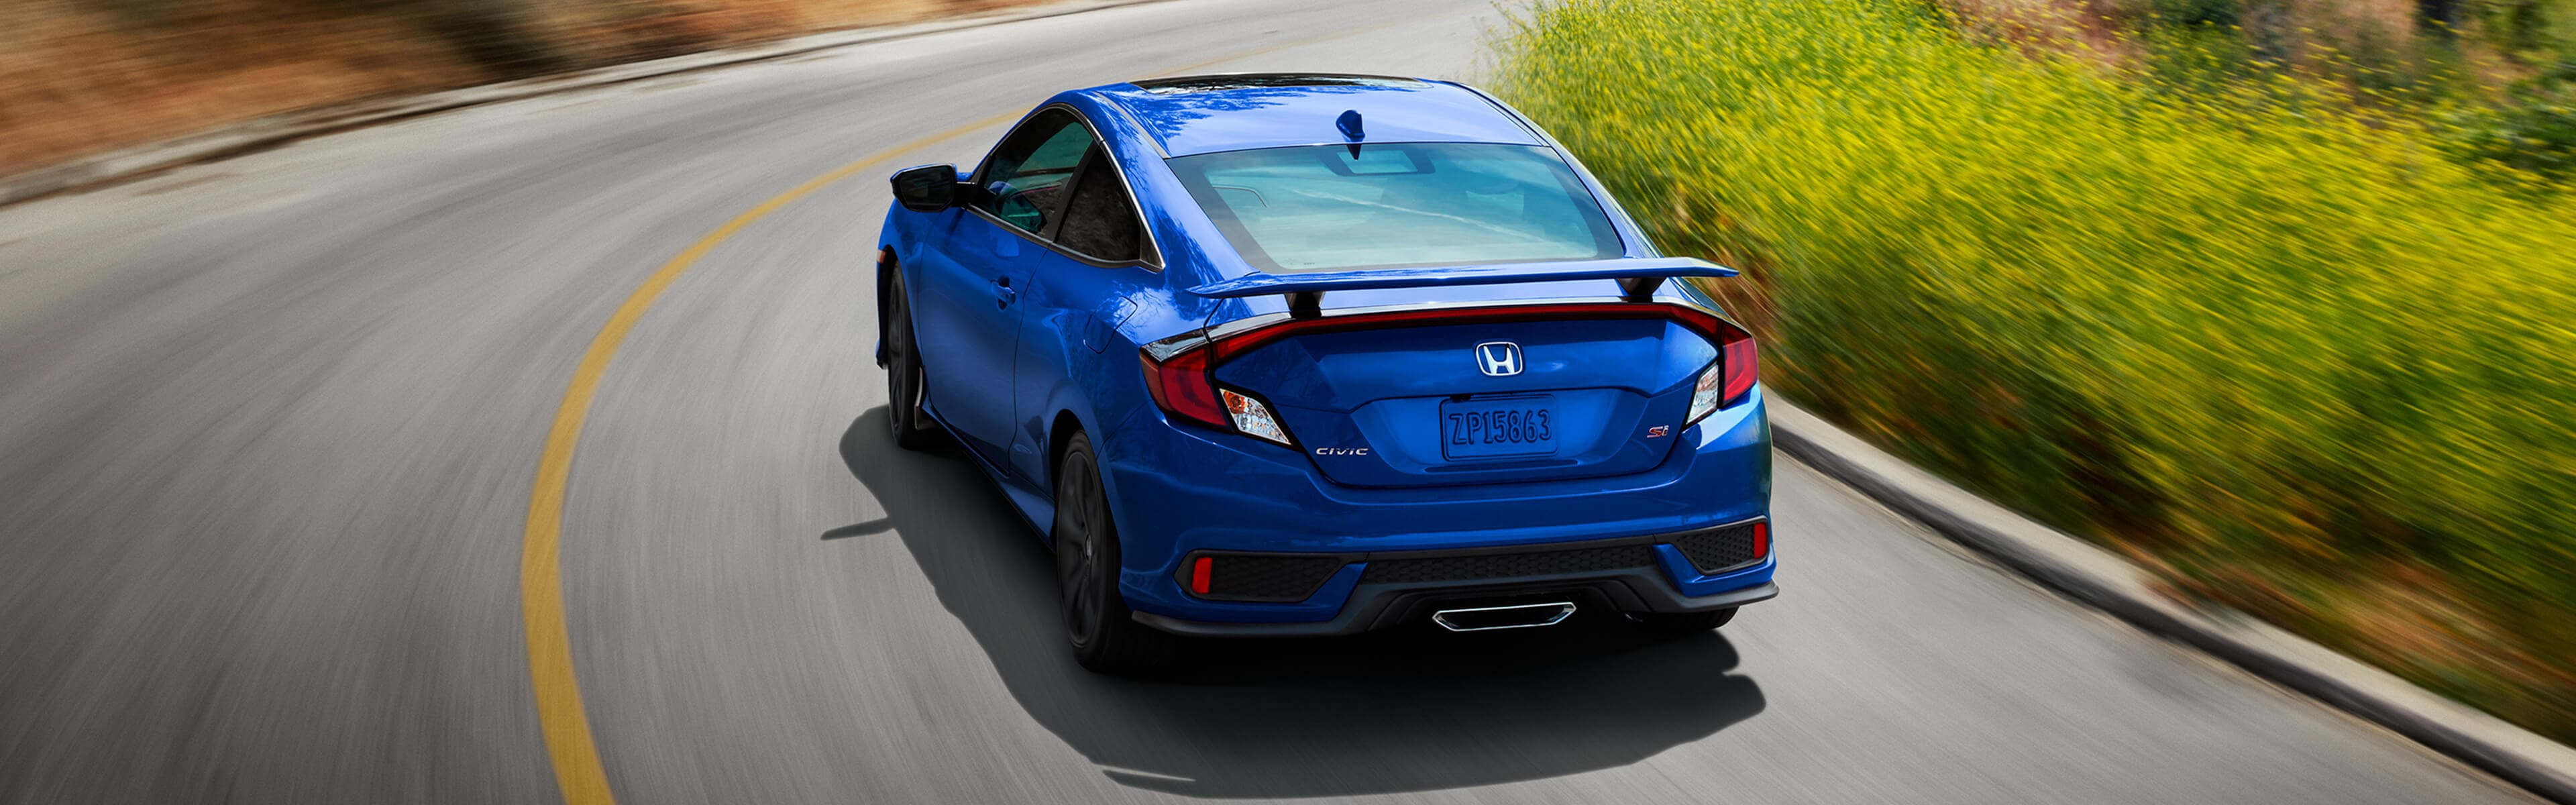 Rear of Honda Civic Coupe driving in the country